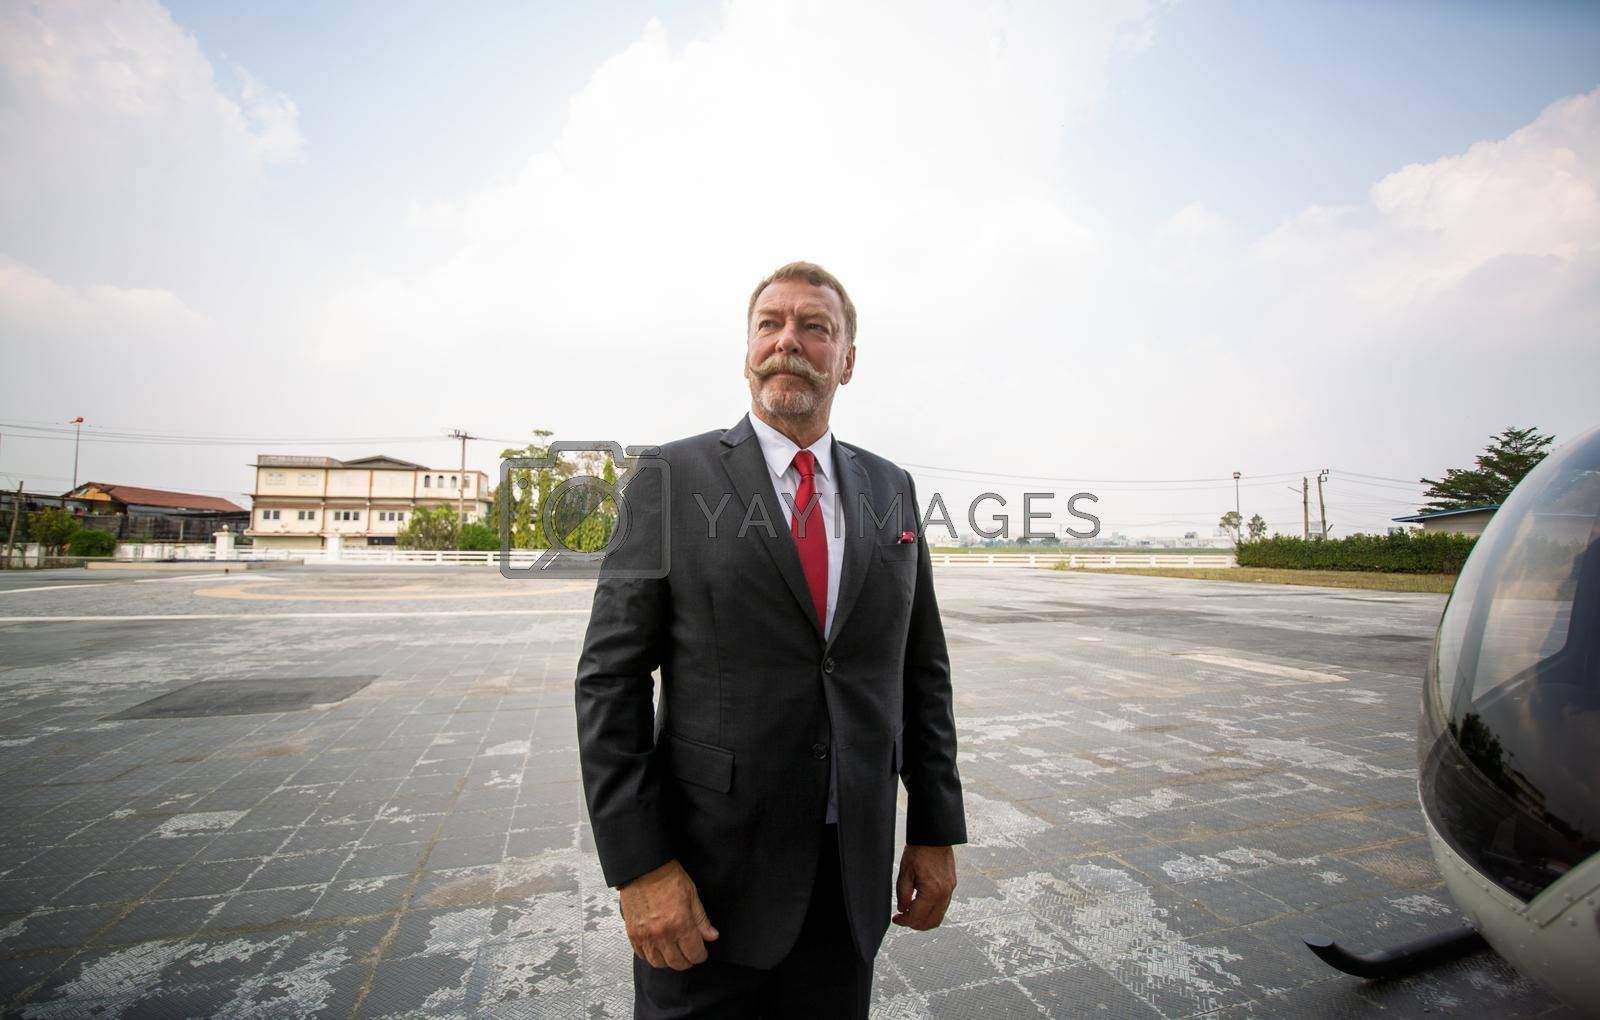 confident business people standing against his private helicopter at landing airport. Professional career success concept